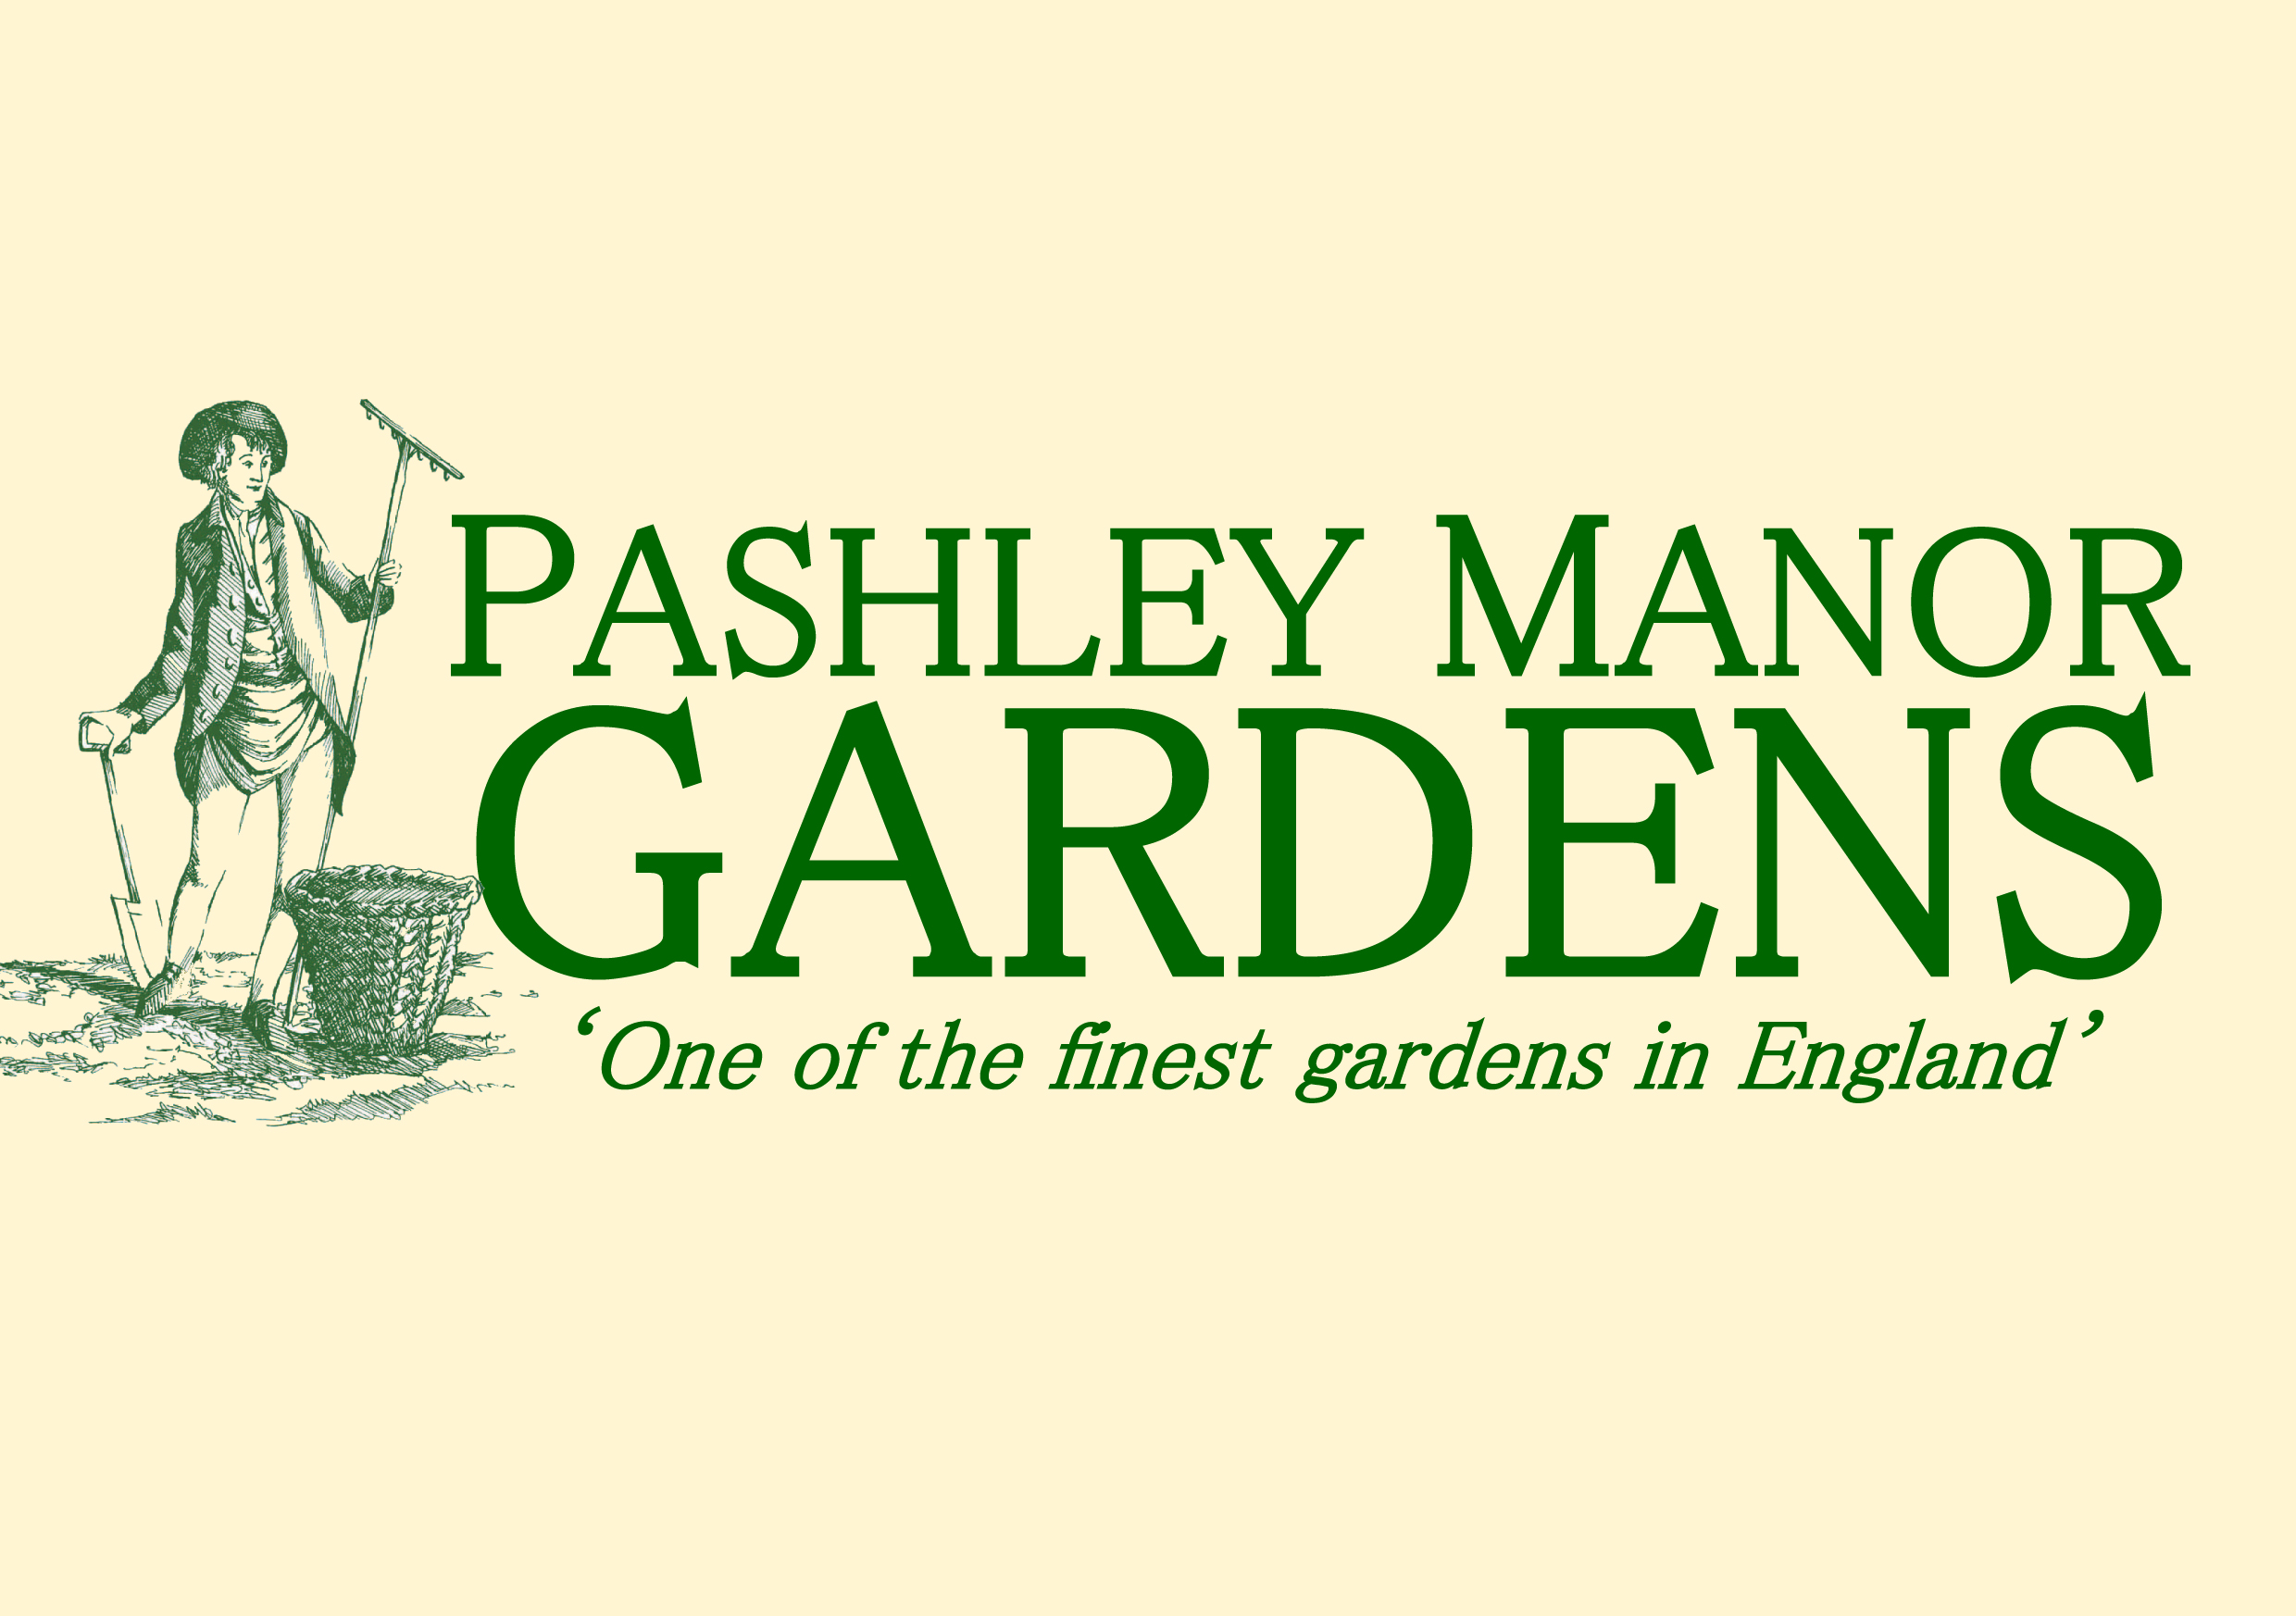 Pashley Manor Gardens A Size Green On Cream 2018